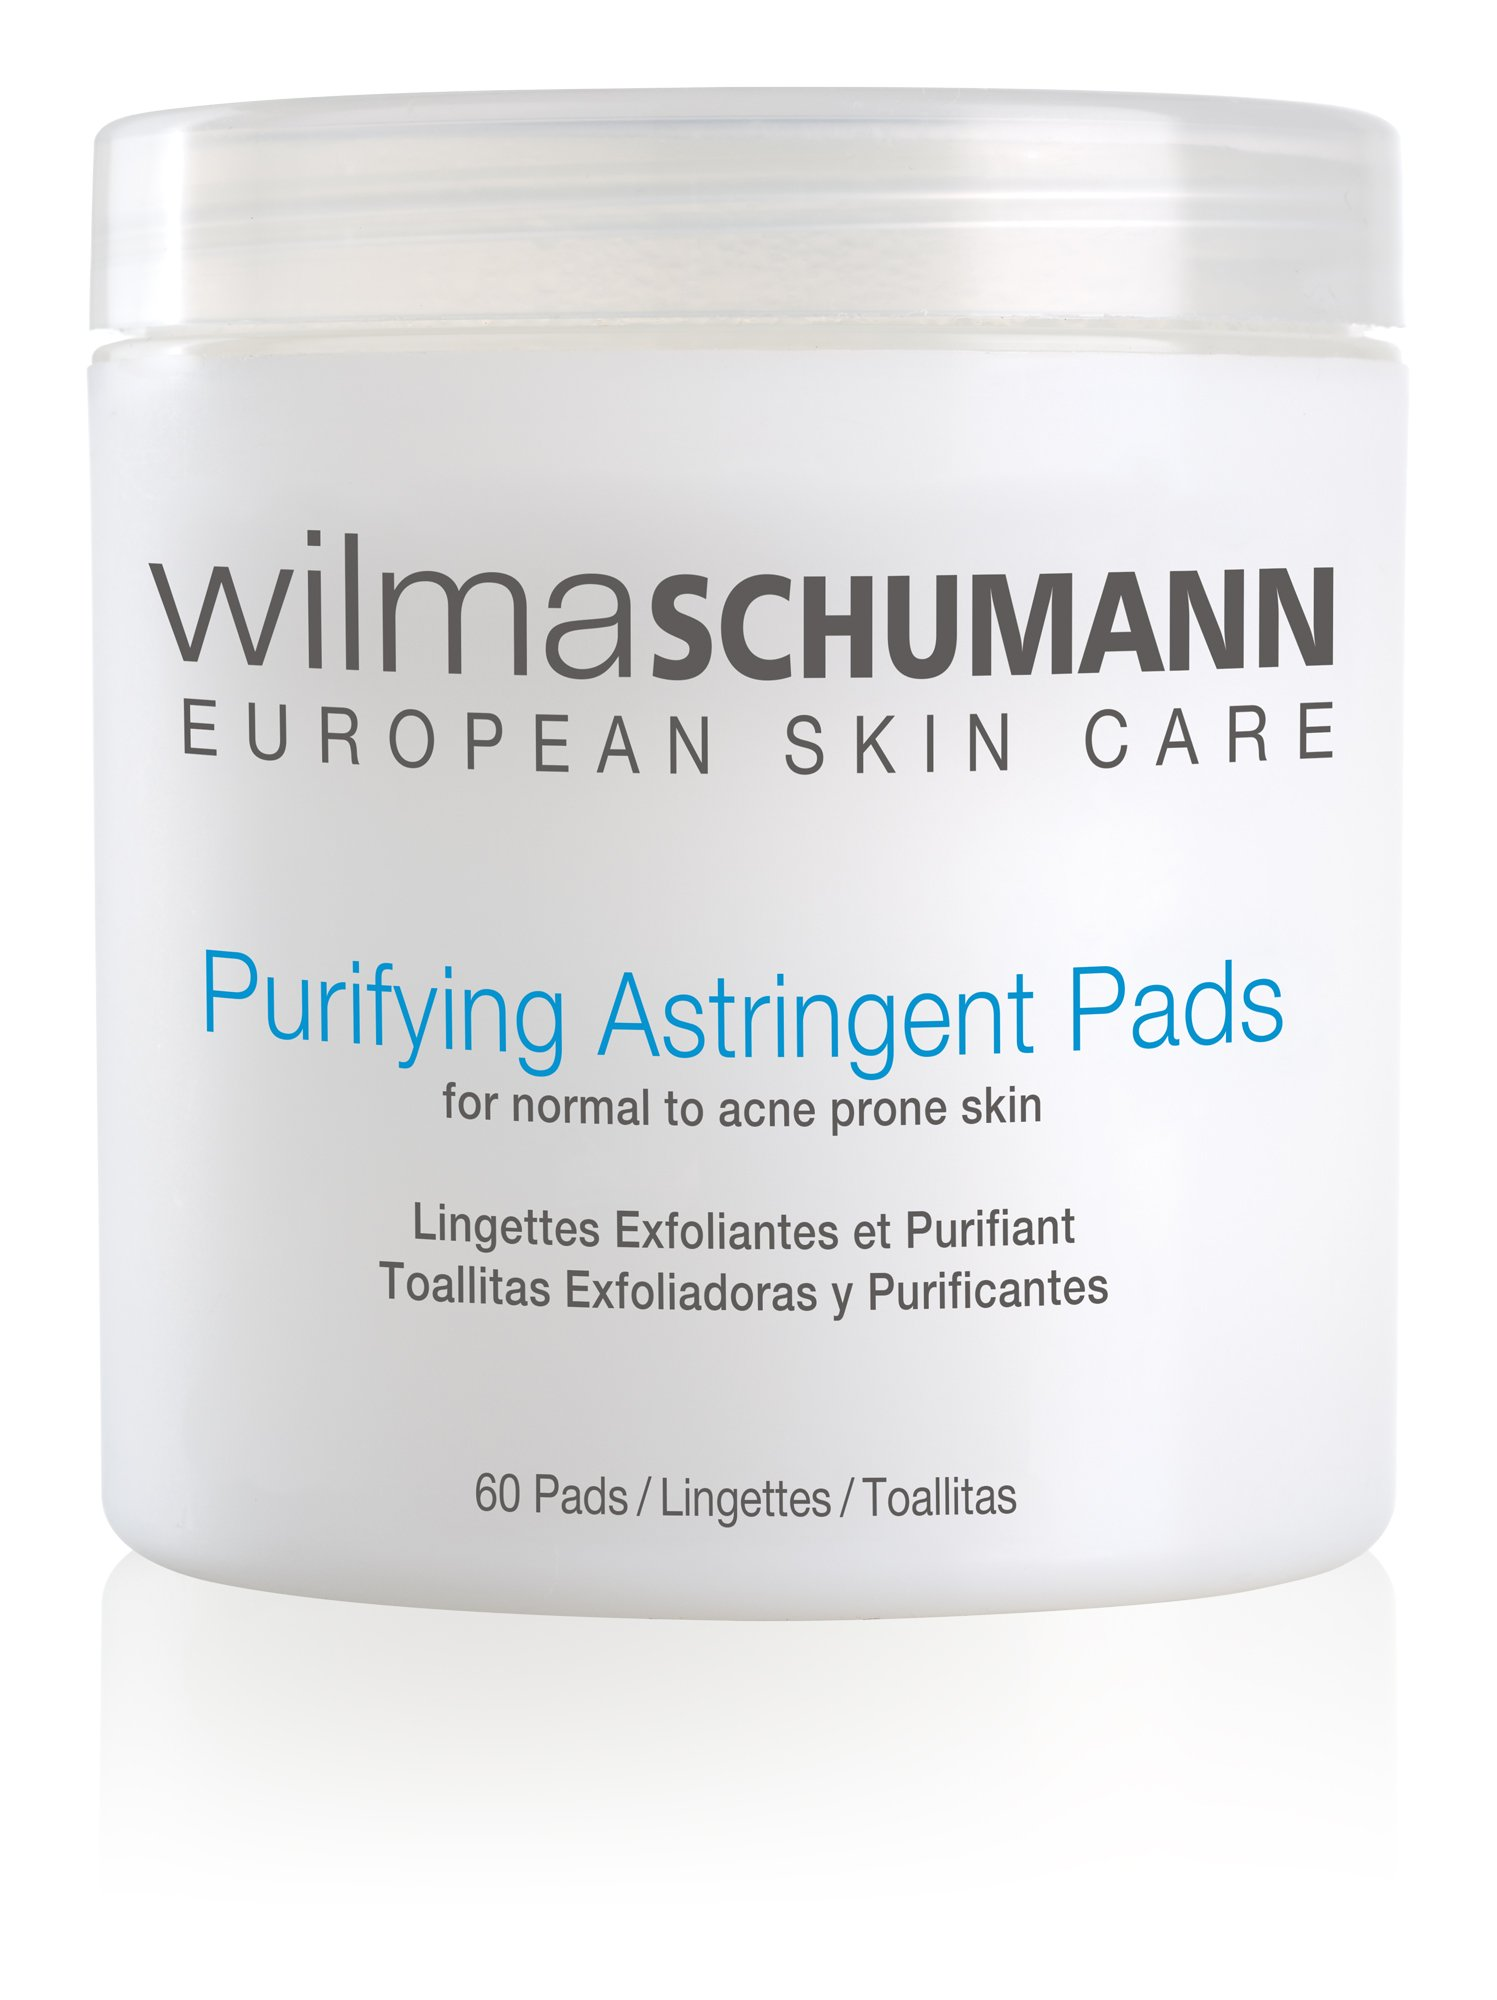 WILMA SCHUMANN Purifying Astringent Pads (60 Pads) - Remove Oil, Impurities, and